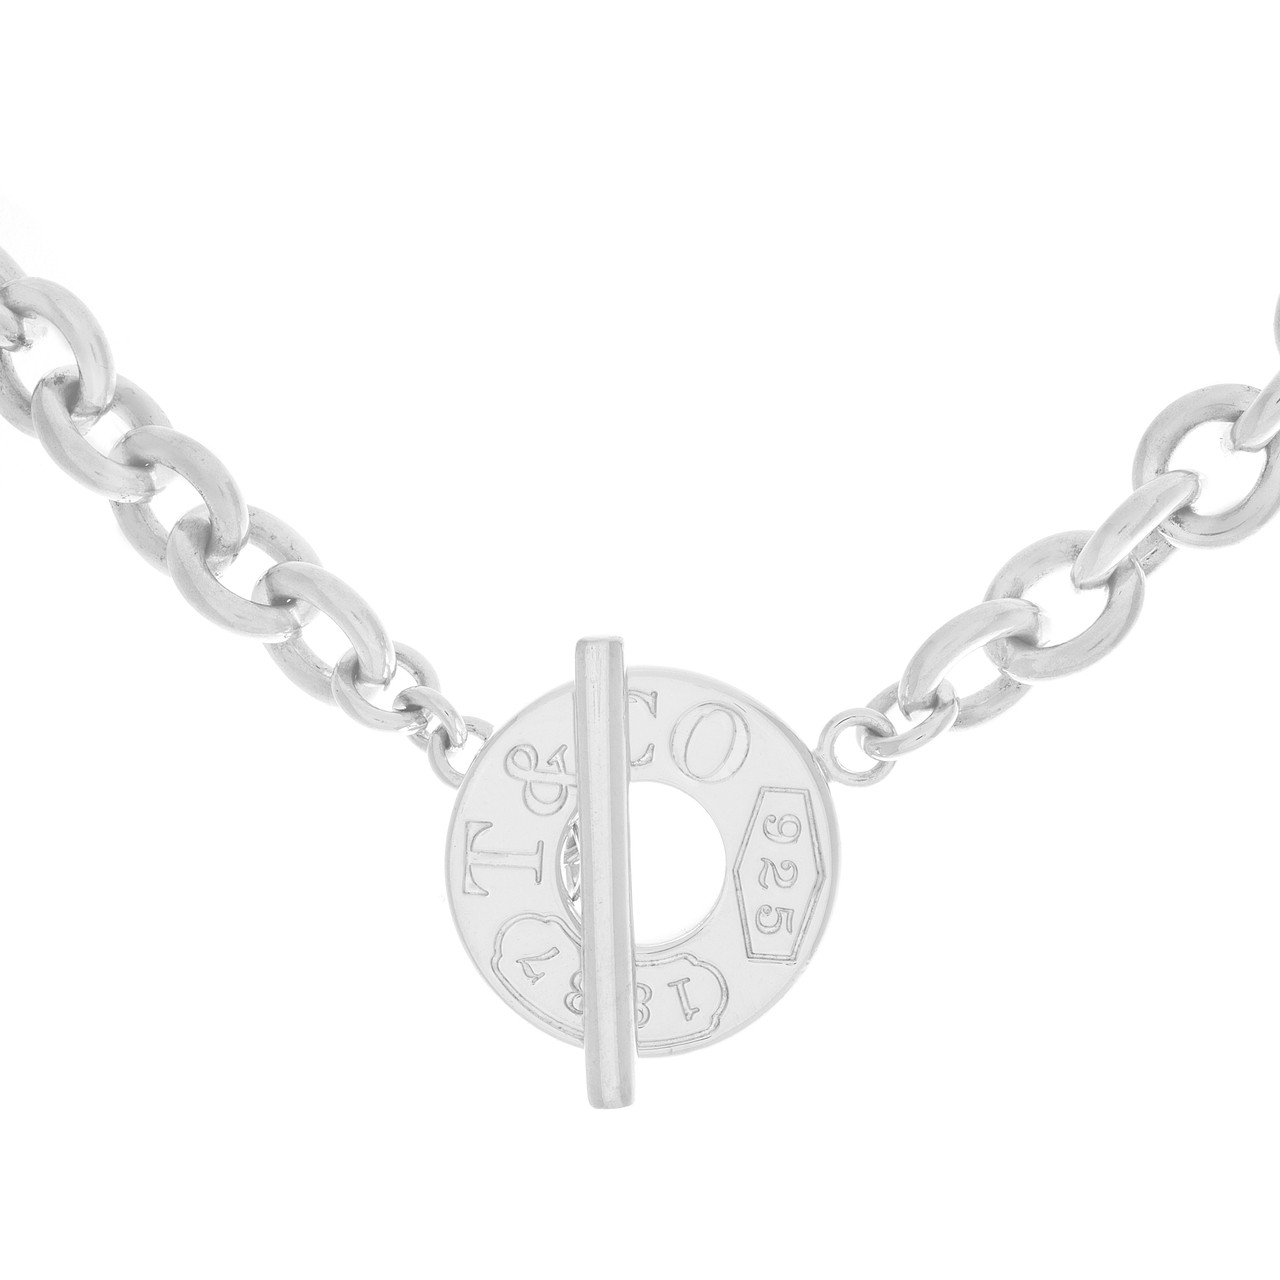 84fe931abc7c Tiffany and Co. Sterling Silver 1837 Toggle Necklace - modaselle